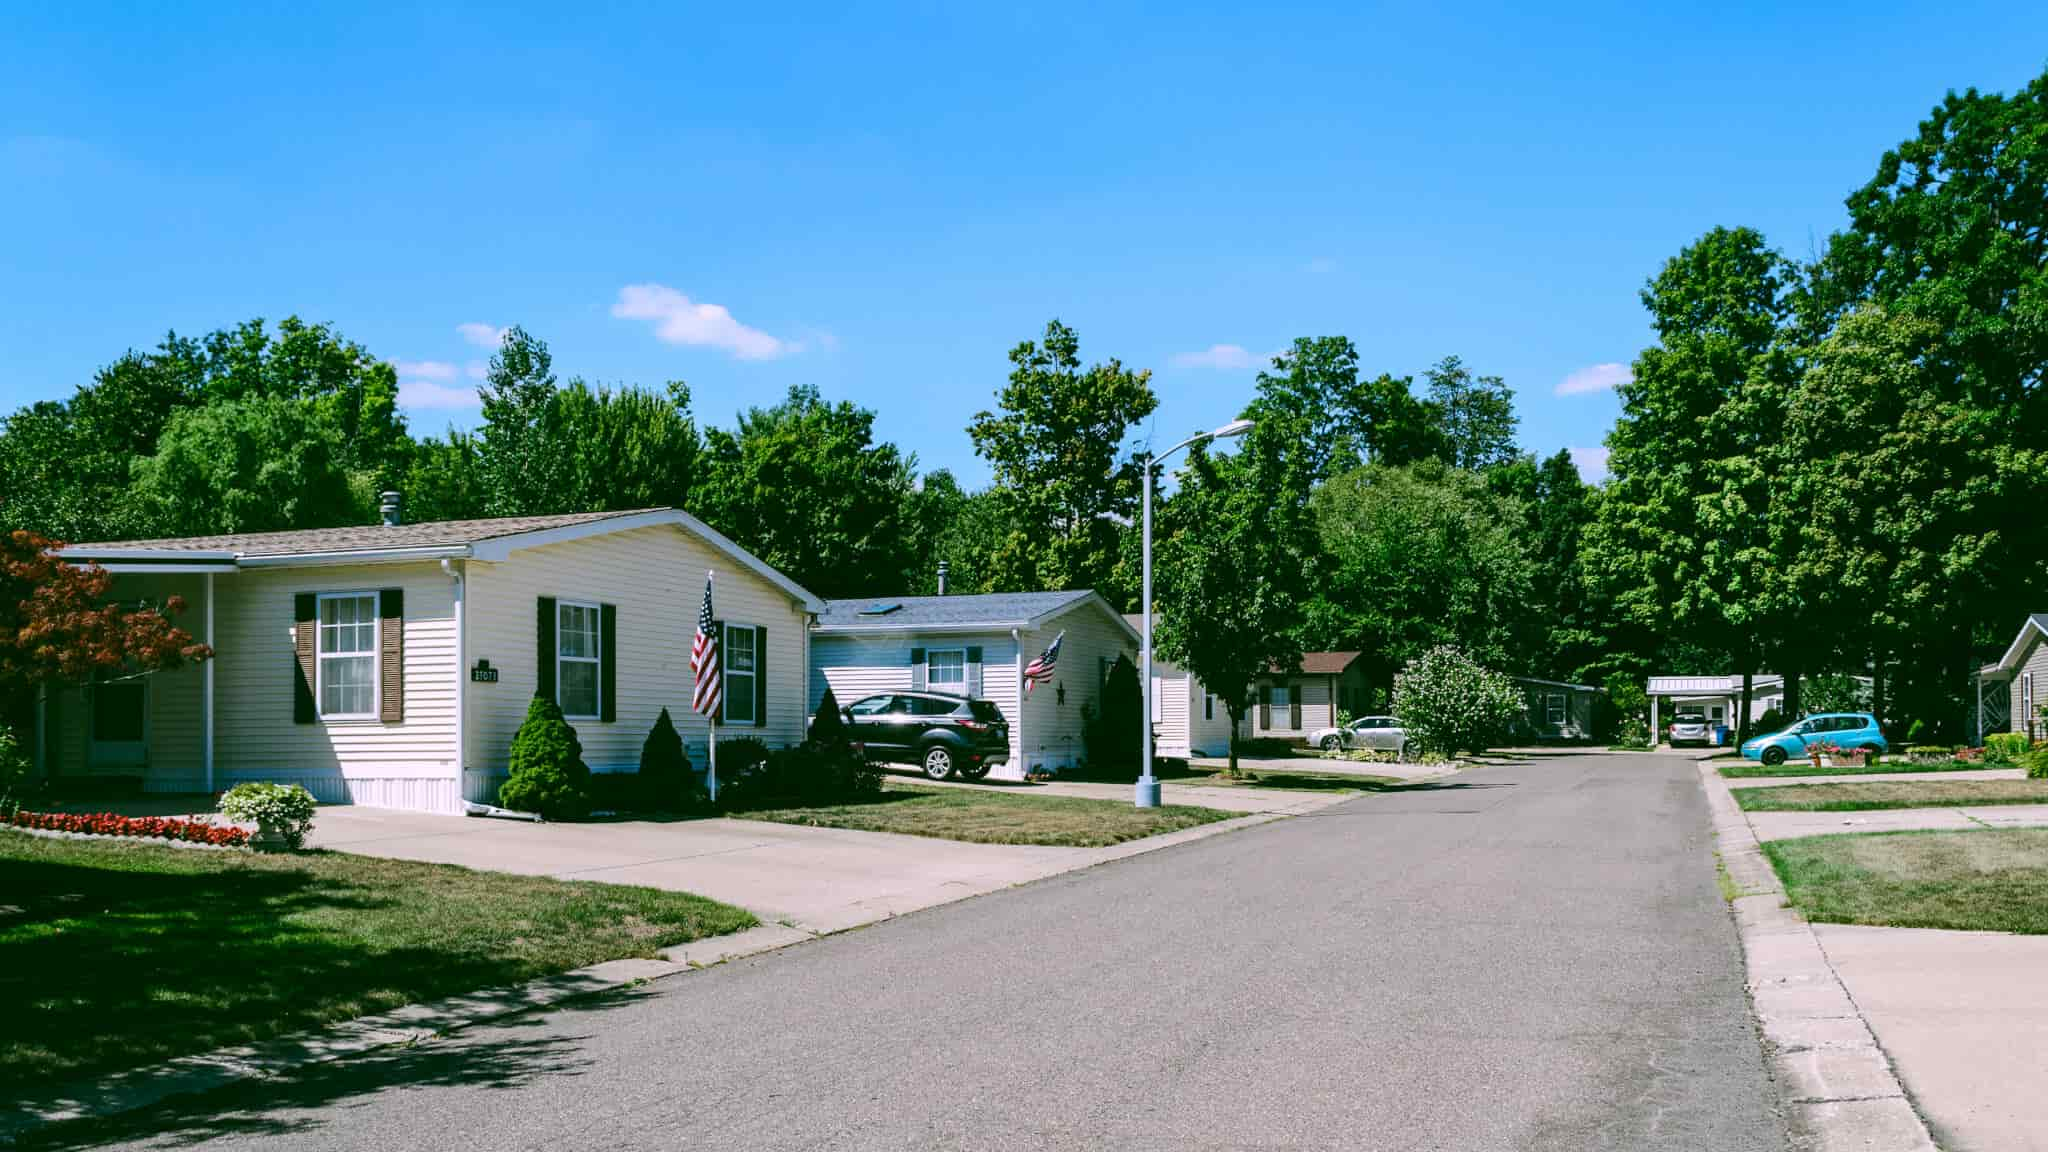 sell my manufactured home to an investor for cash